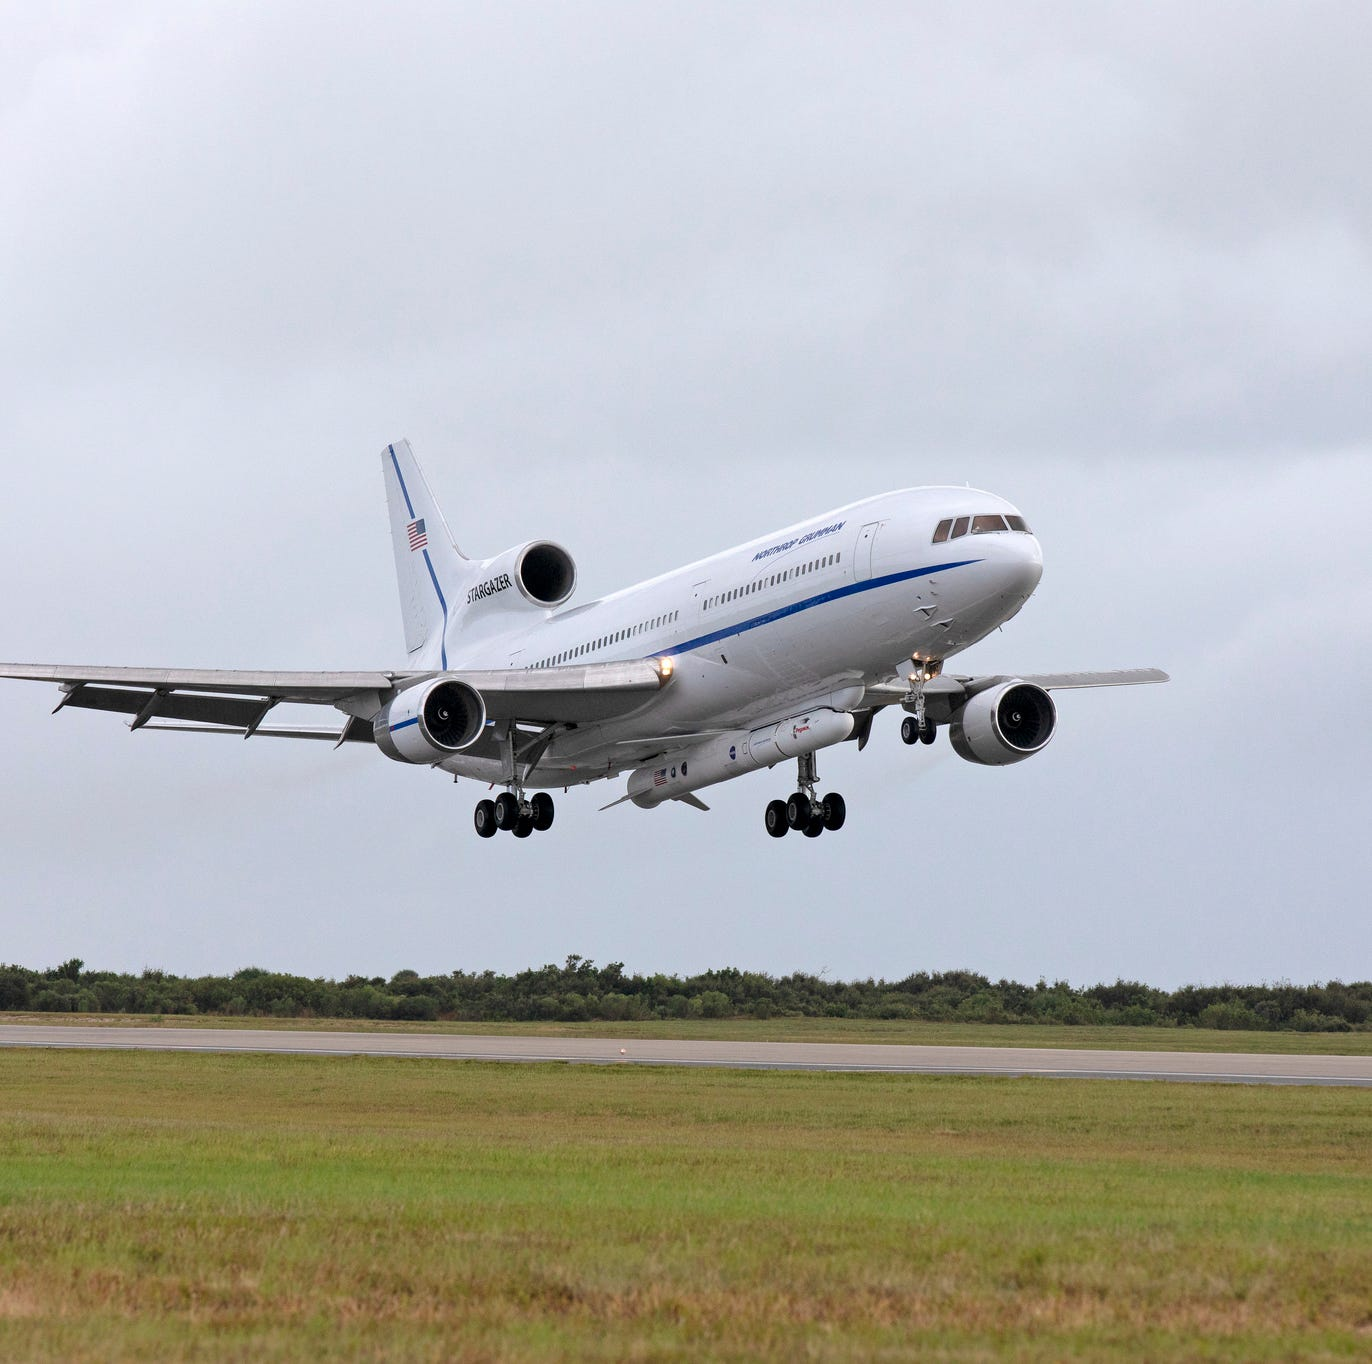 After delays, Pegasus rocket could fly NASA's ICON mission from Cape Canaveral this week